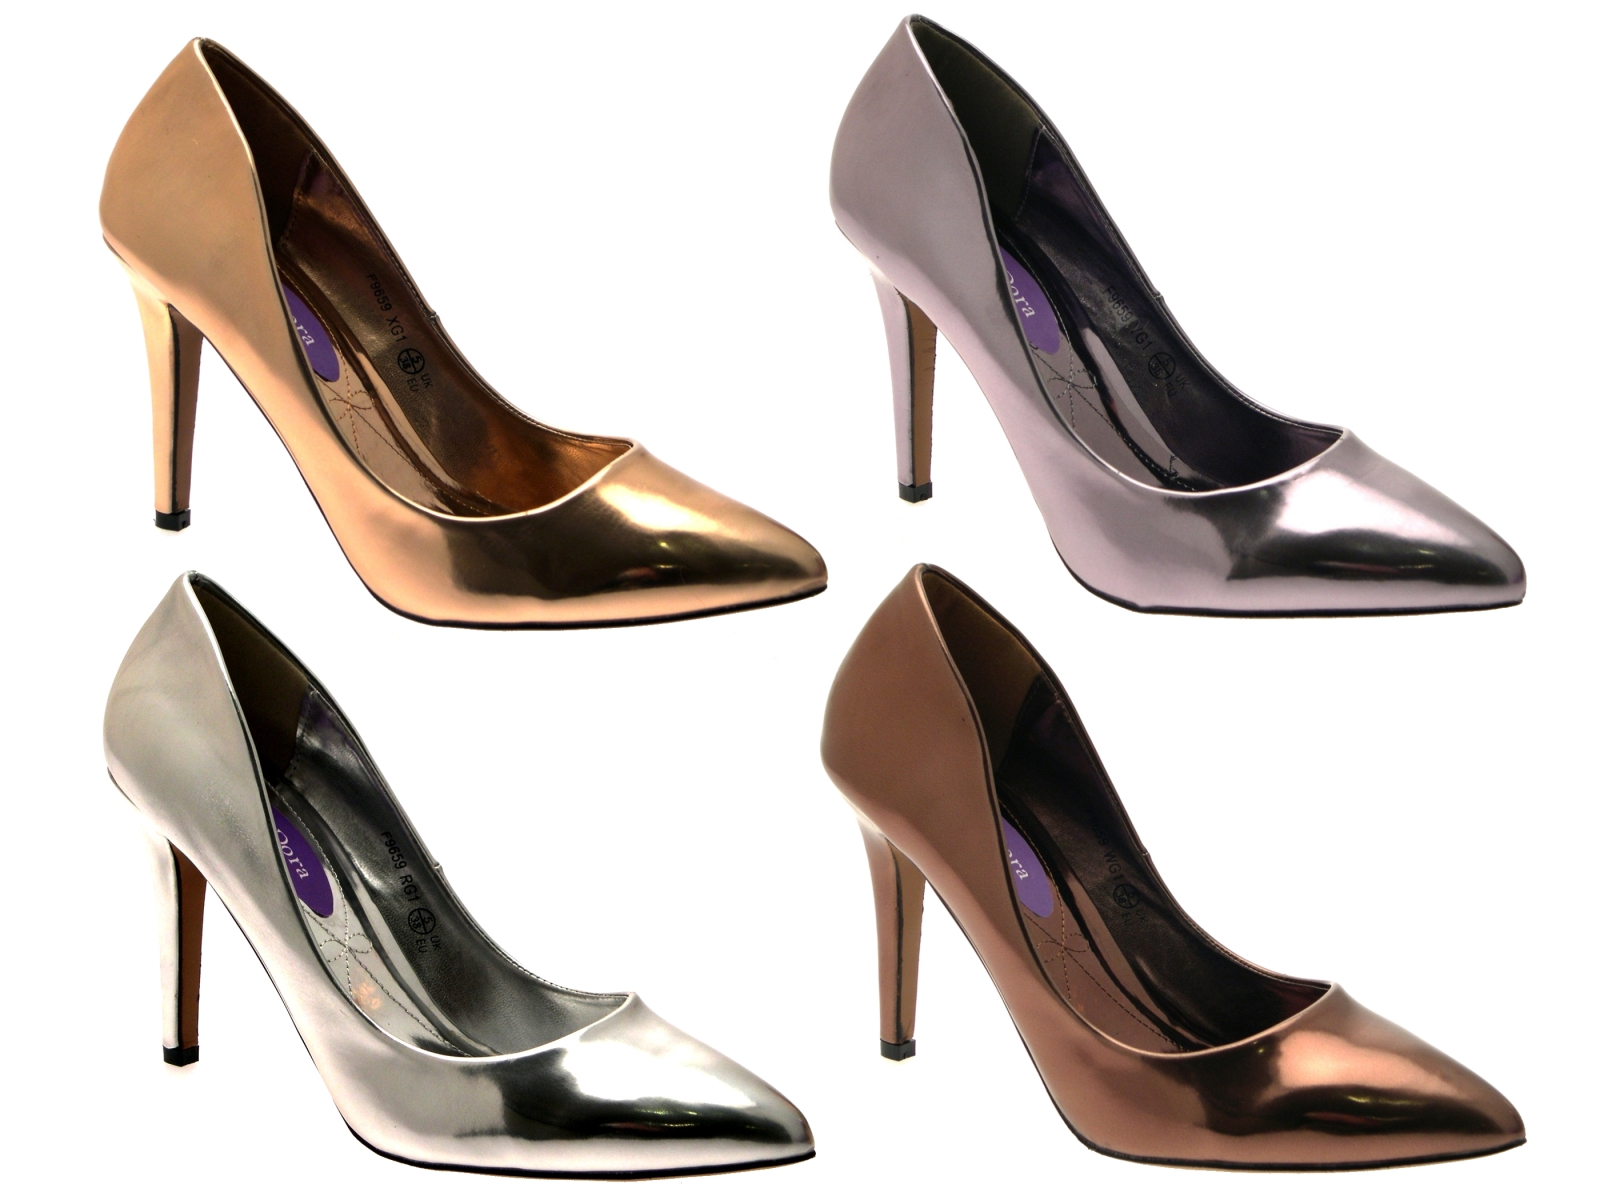 Womens-Metallic-Pointed-Toe-Court-Stiletto-High-Heels-Ladies-Work-Office-Shoes thumbnail 29